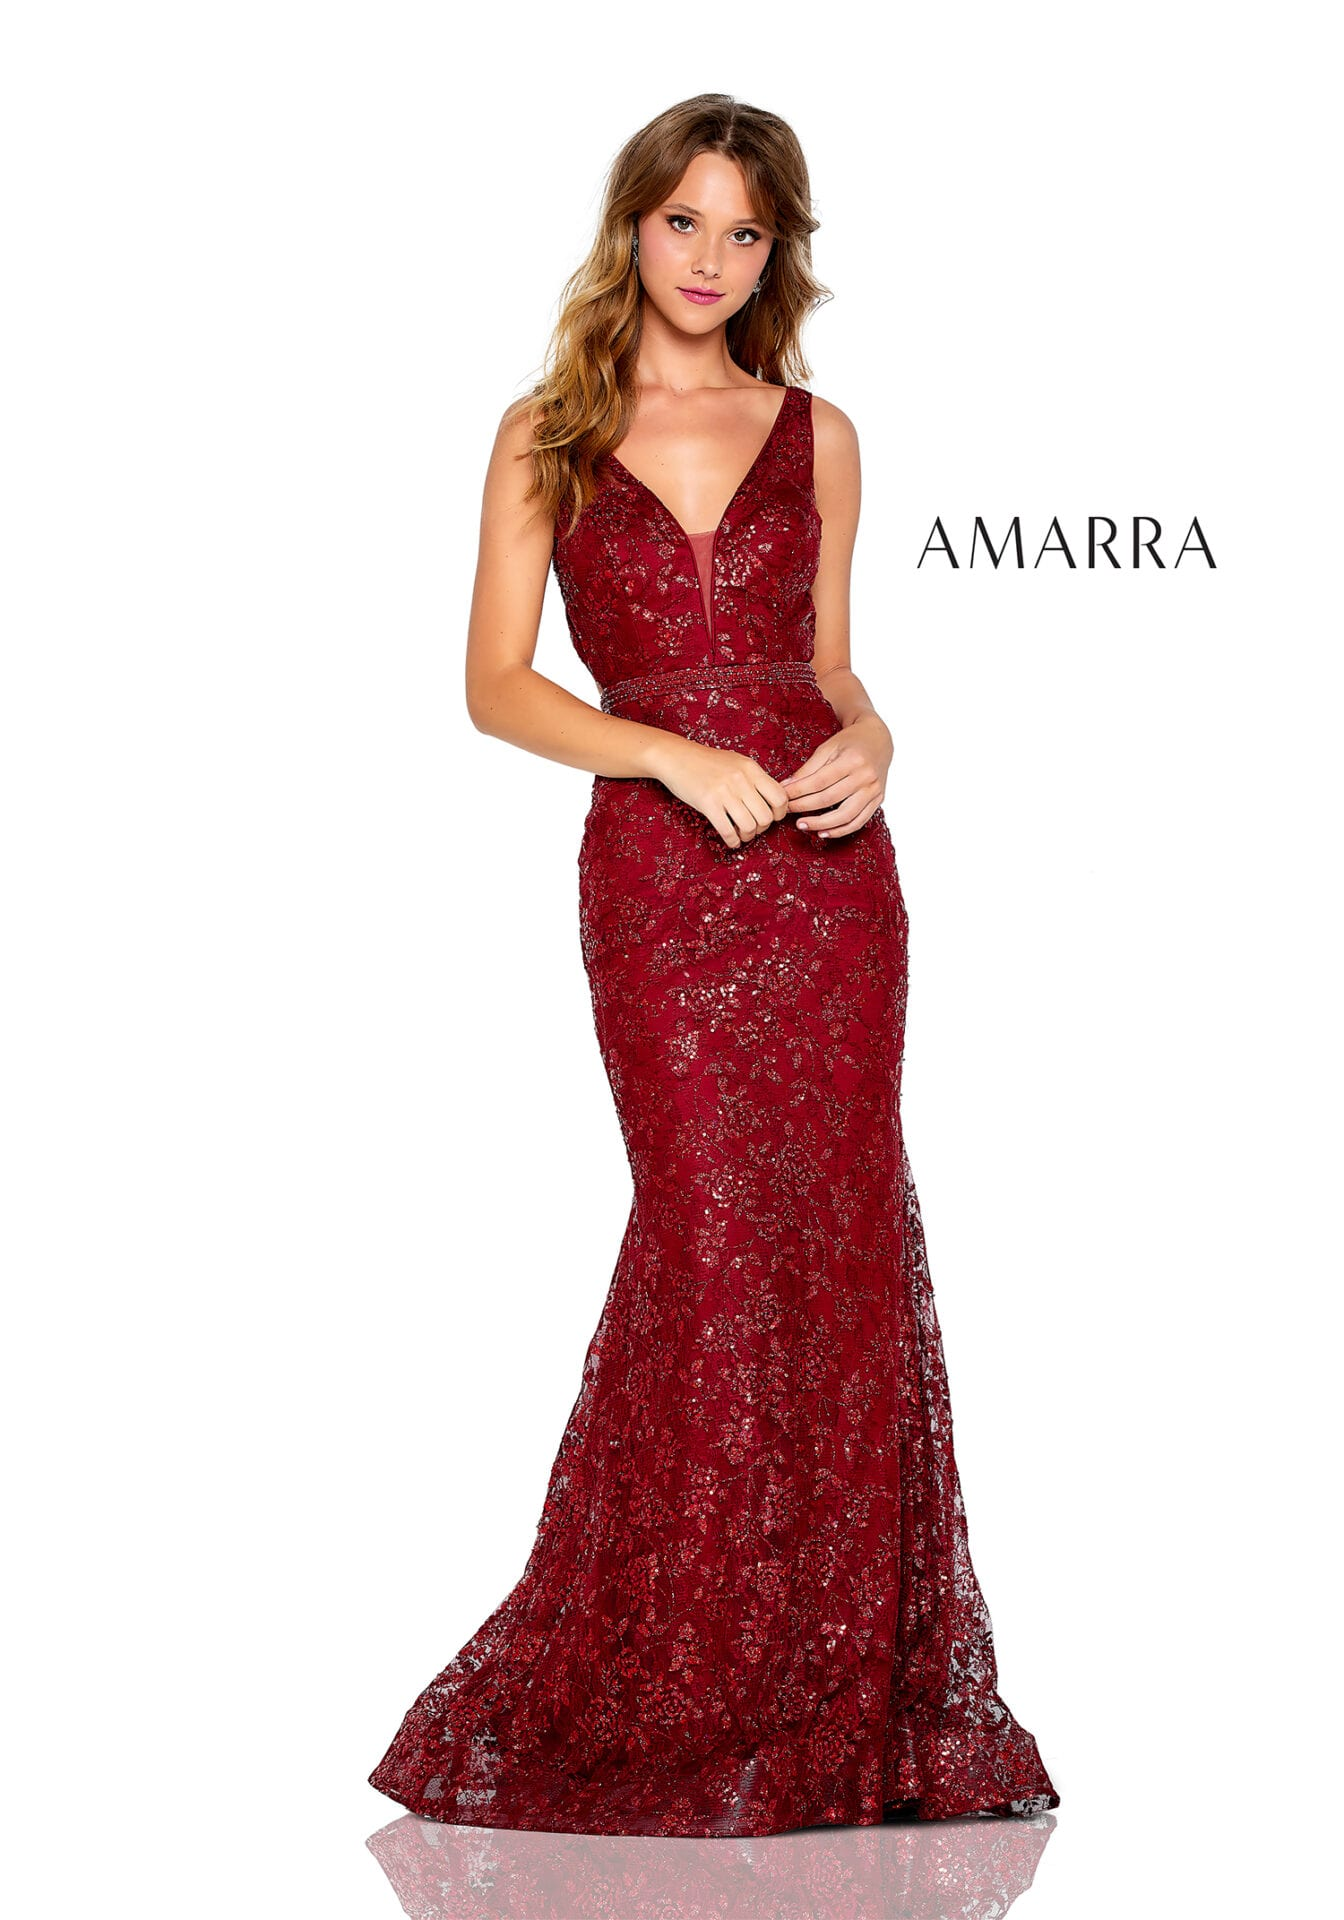 Fitted gown featuring a V-neck with mesh insert, beaded belt, and glitter sequin floral pattern.